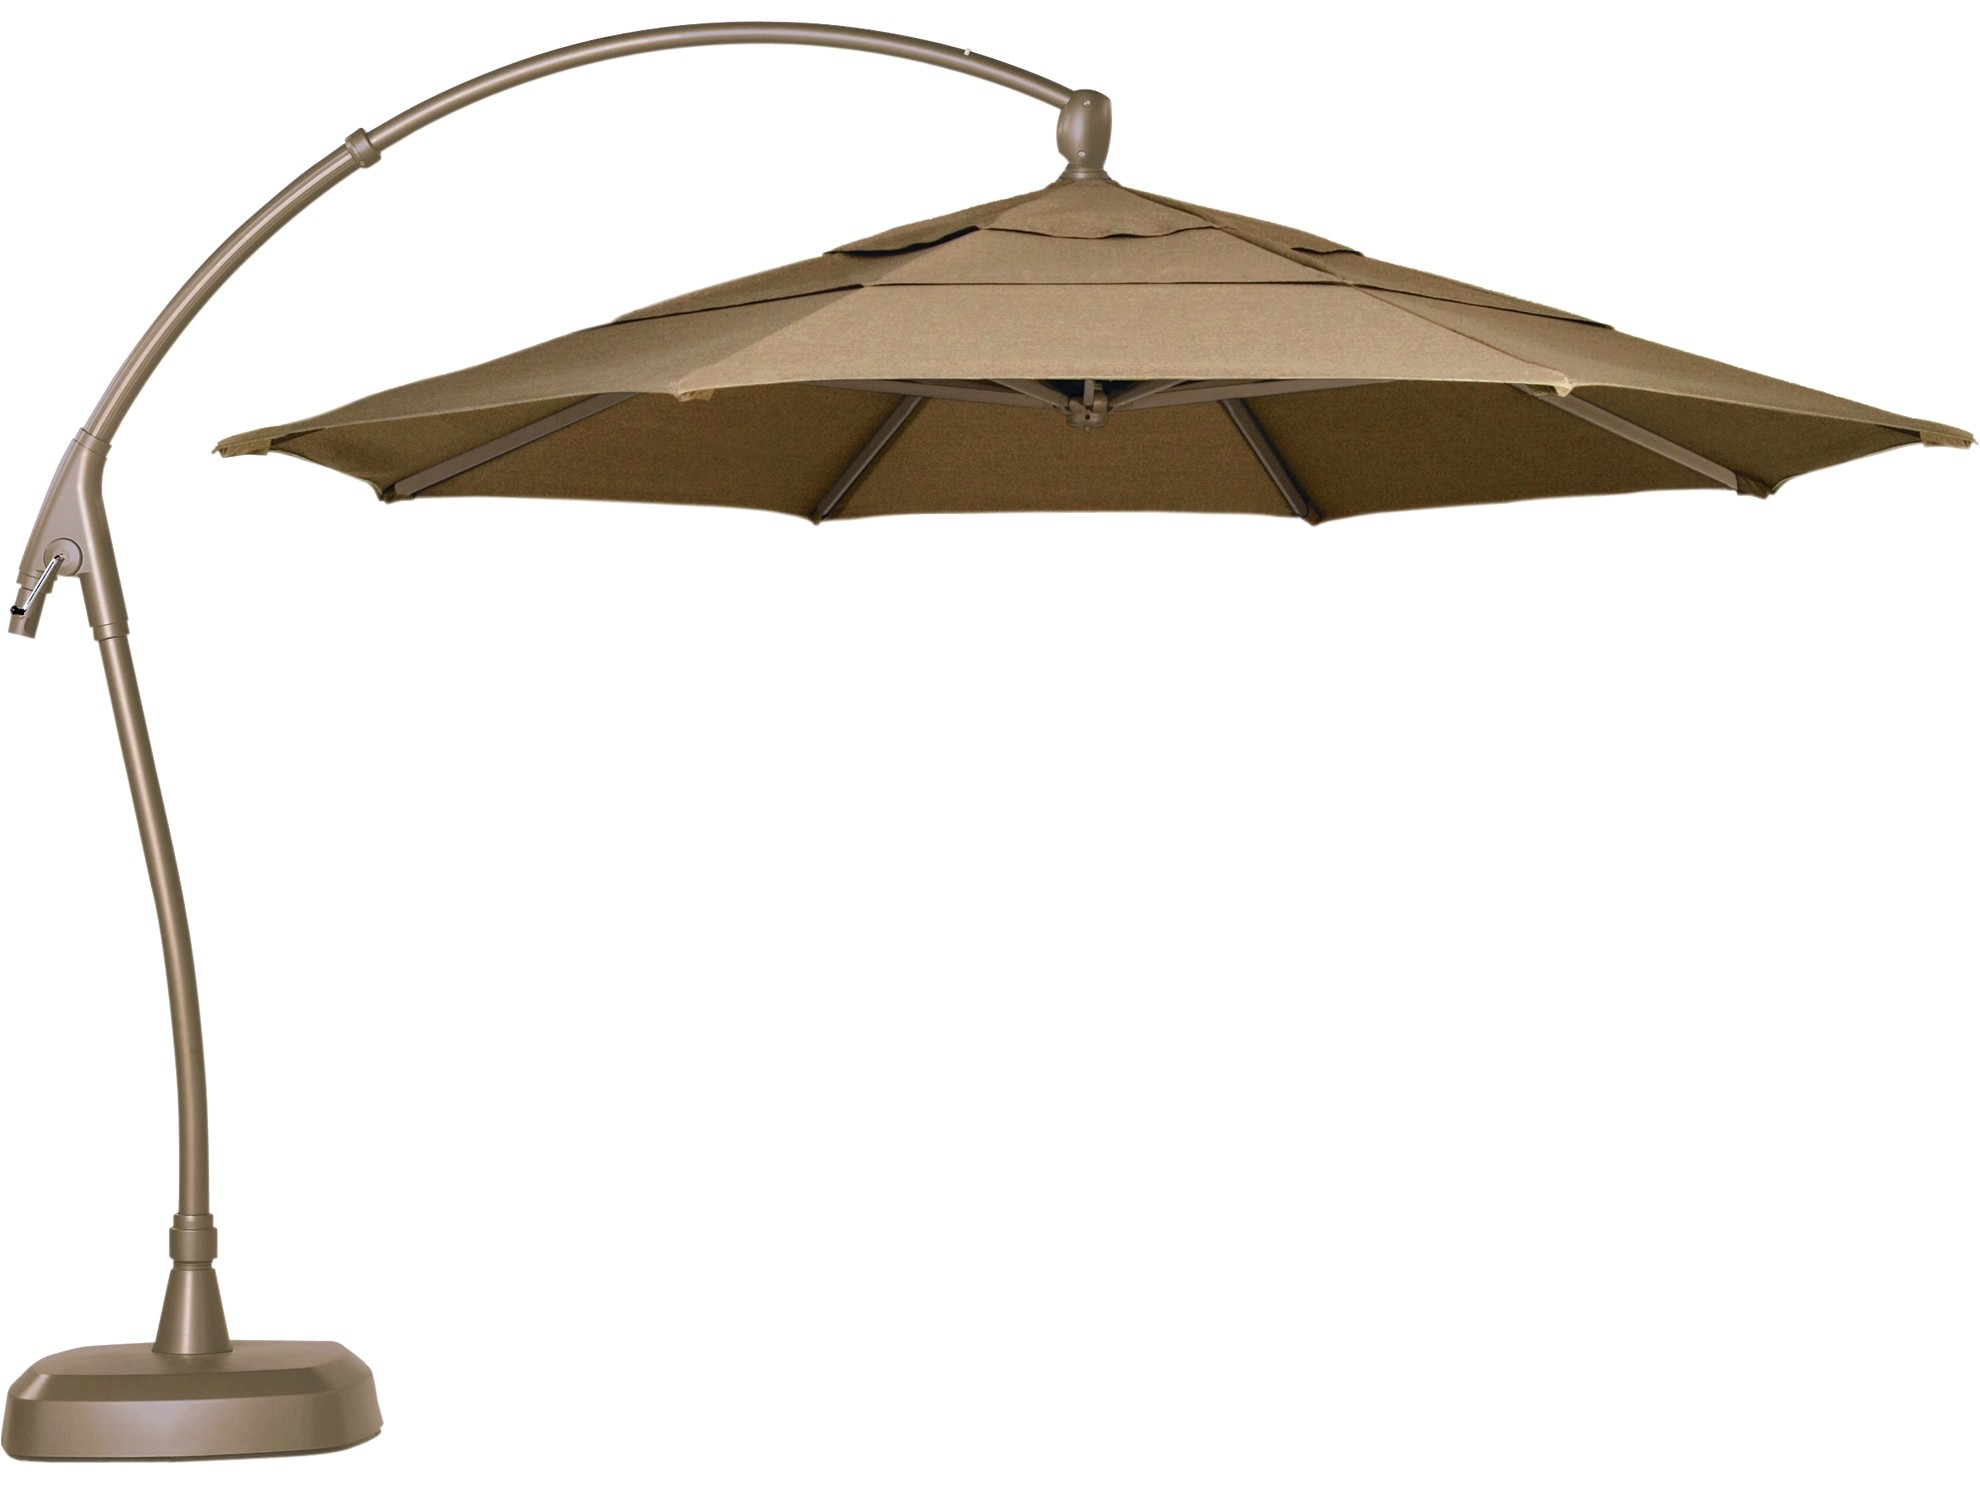 Garden Treasures Offset Umbrella Replacement Canopy Fresh Patio Umbrella  Replacement Canopy Lowes Pictures Home